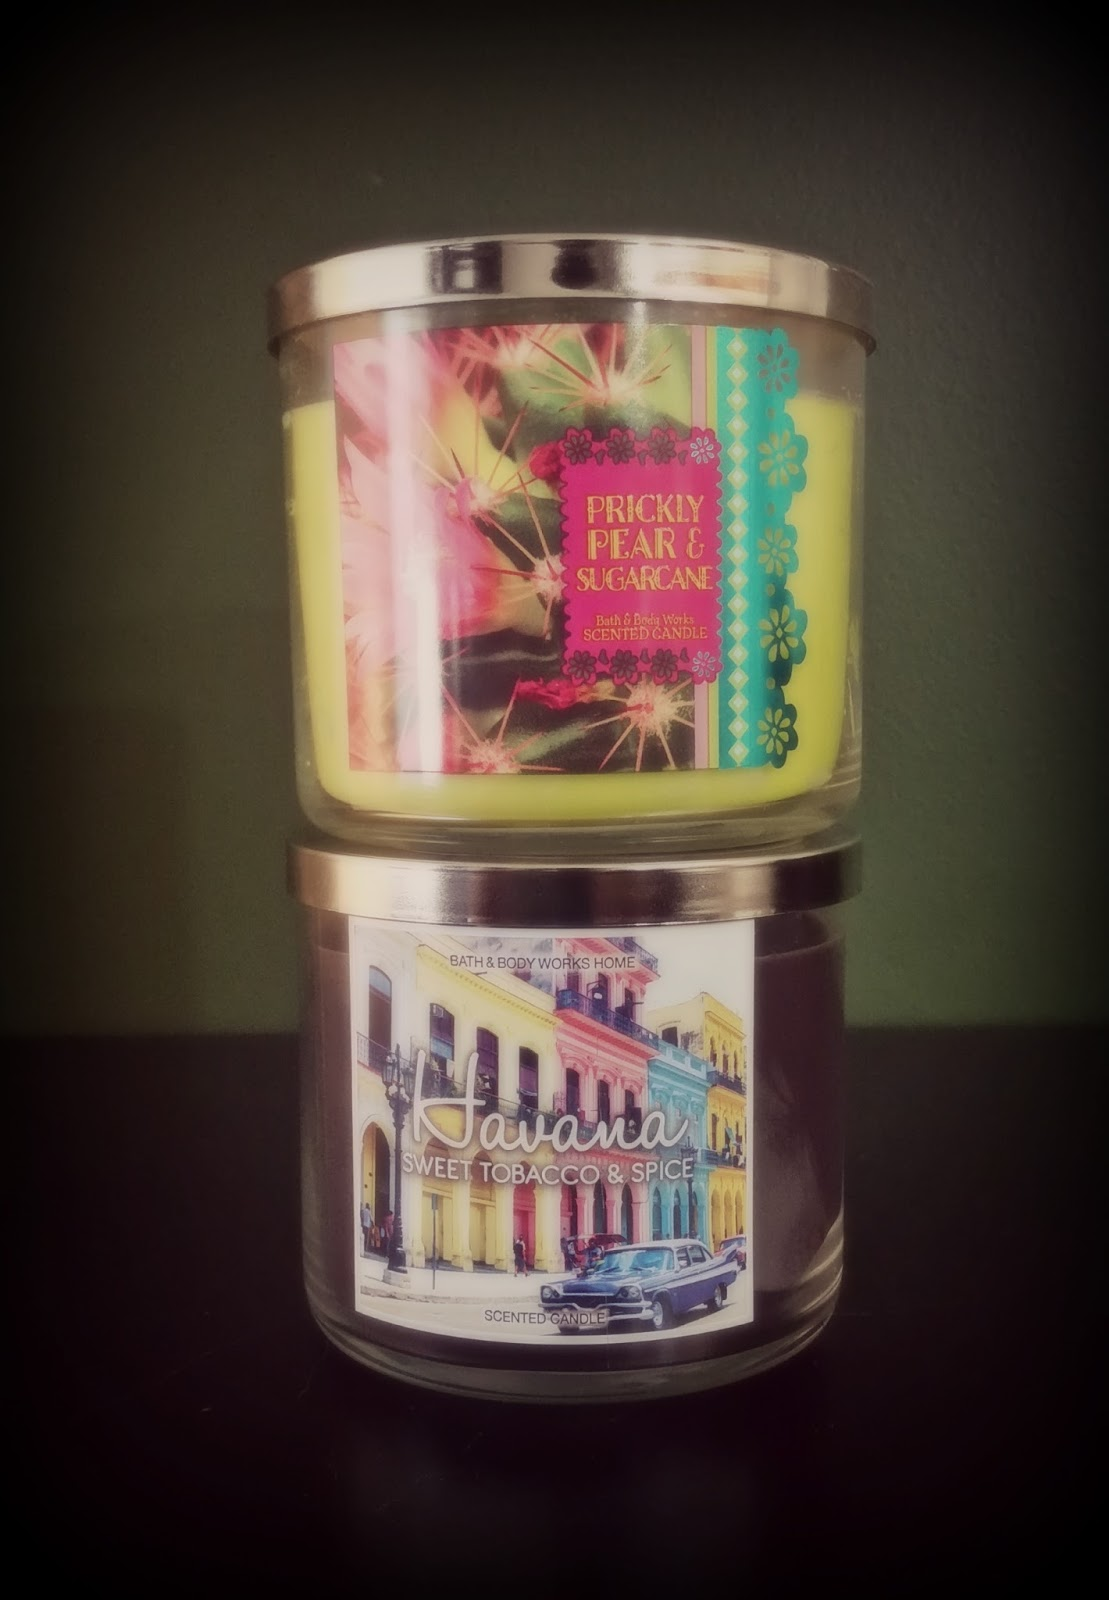 That S So Test Scent Havana Prickly Pear Sugarcane Cold Sniff